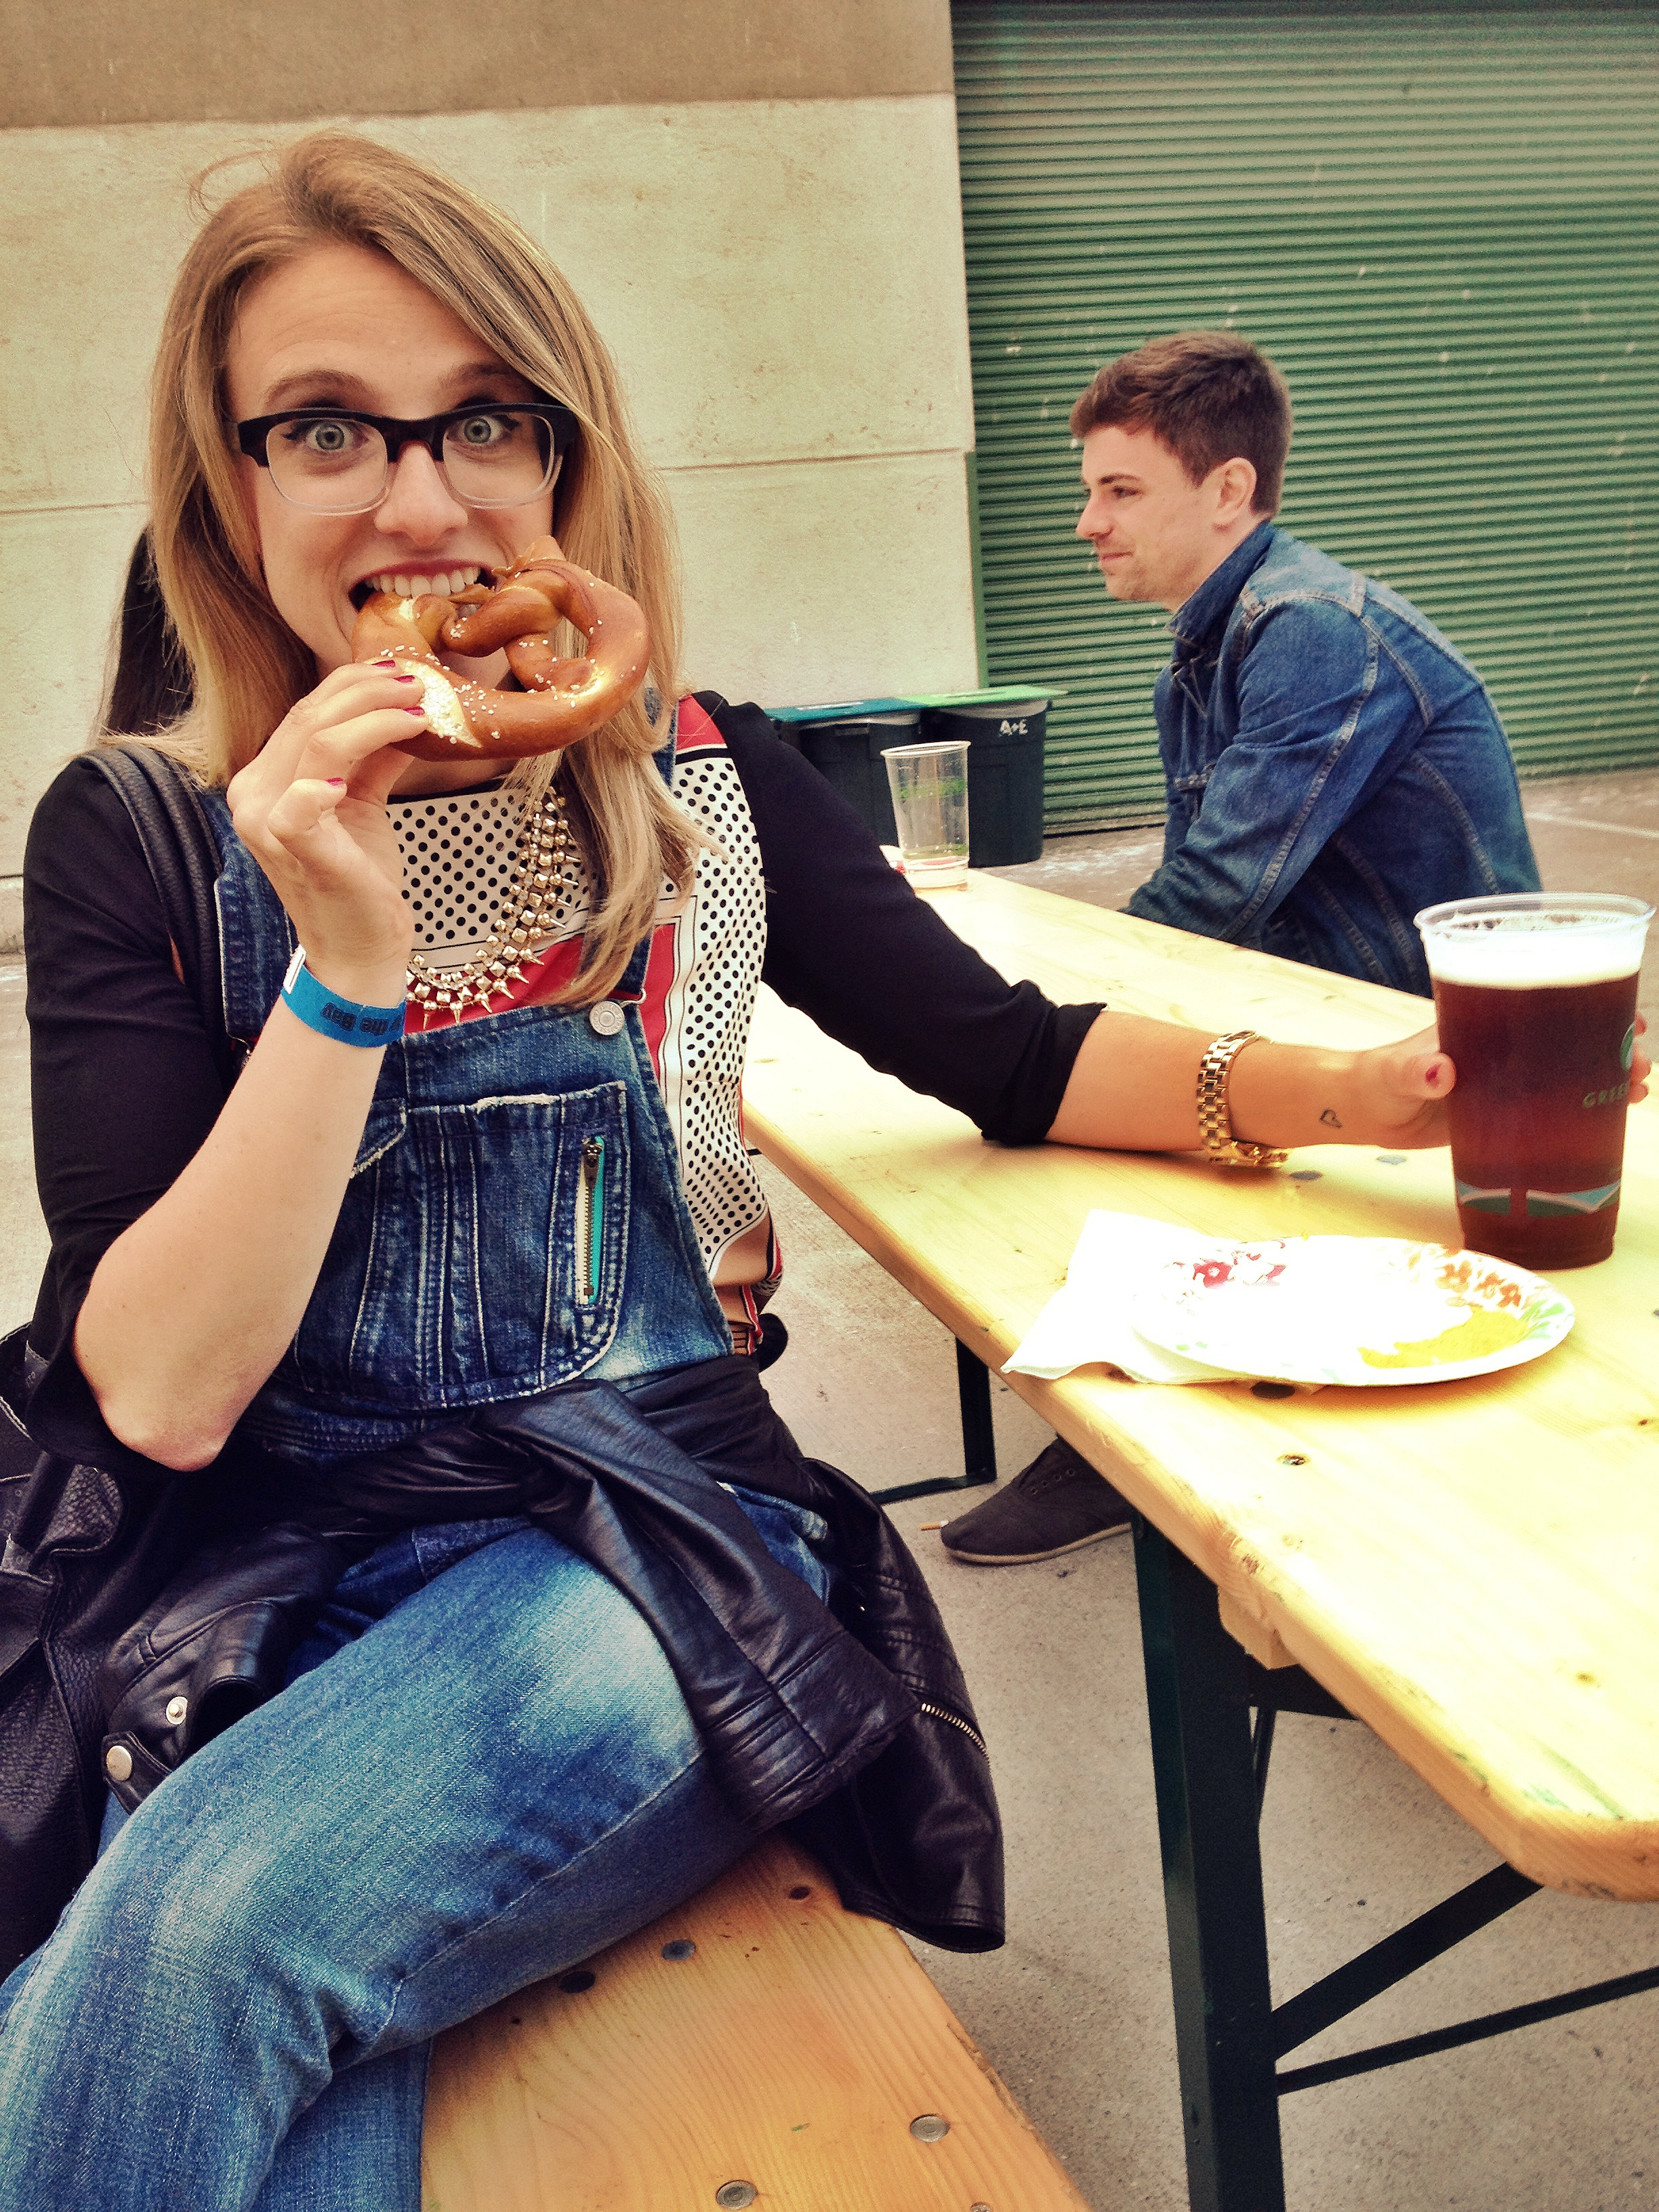 This also happened at Oktoberfest. I also was told I was inhaling this pretzel by strangers later.